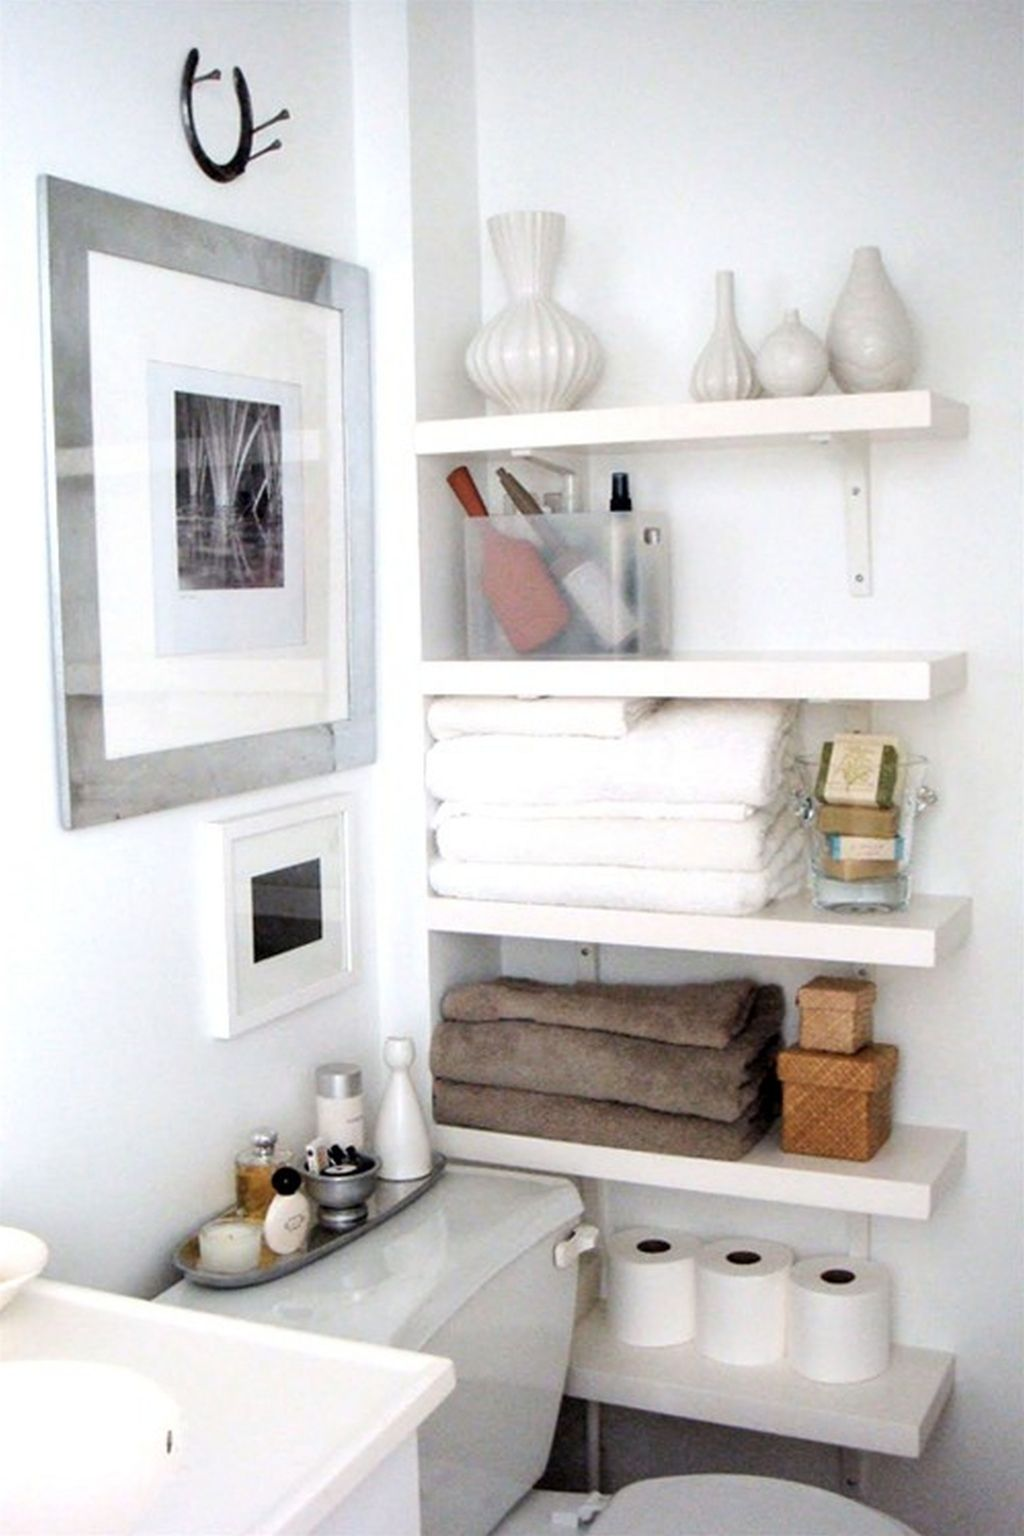 Just Got a Little Space? These Small Bathroom Designs Will Inspire ...